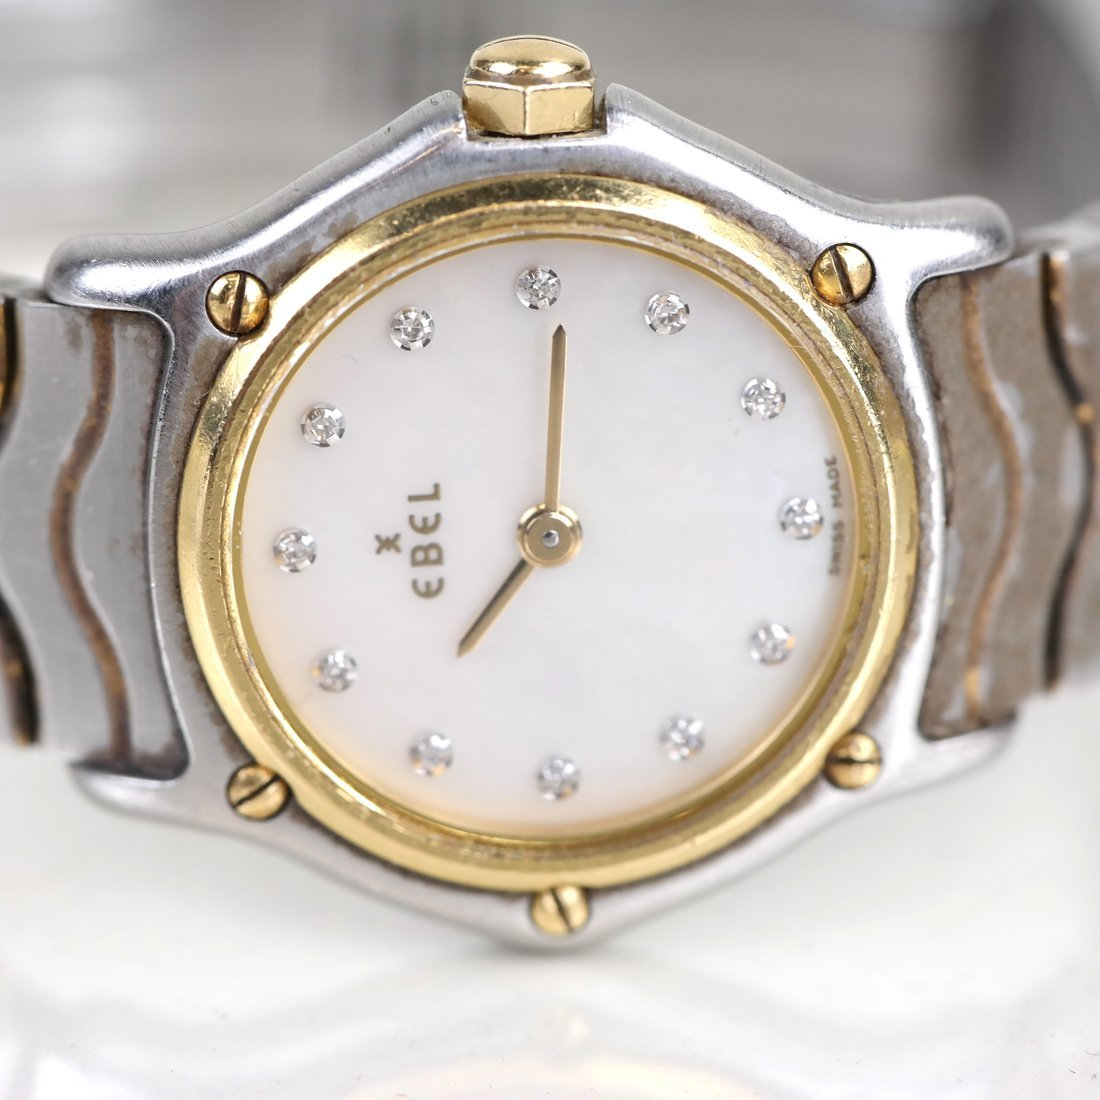 Ebel Watch, 18k and Stainless - 3